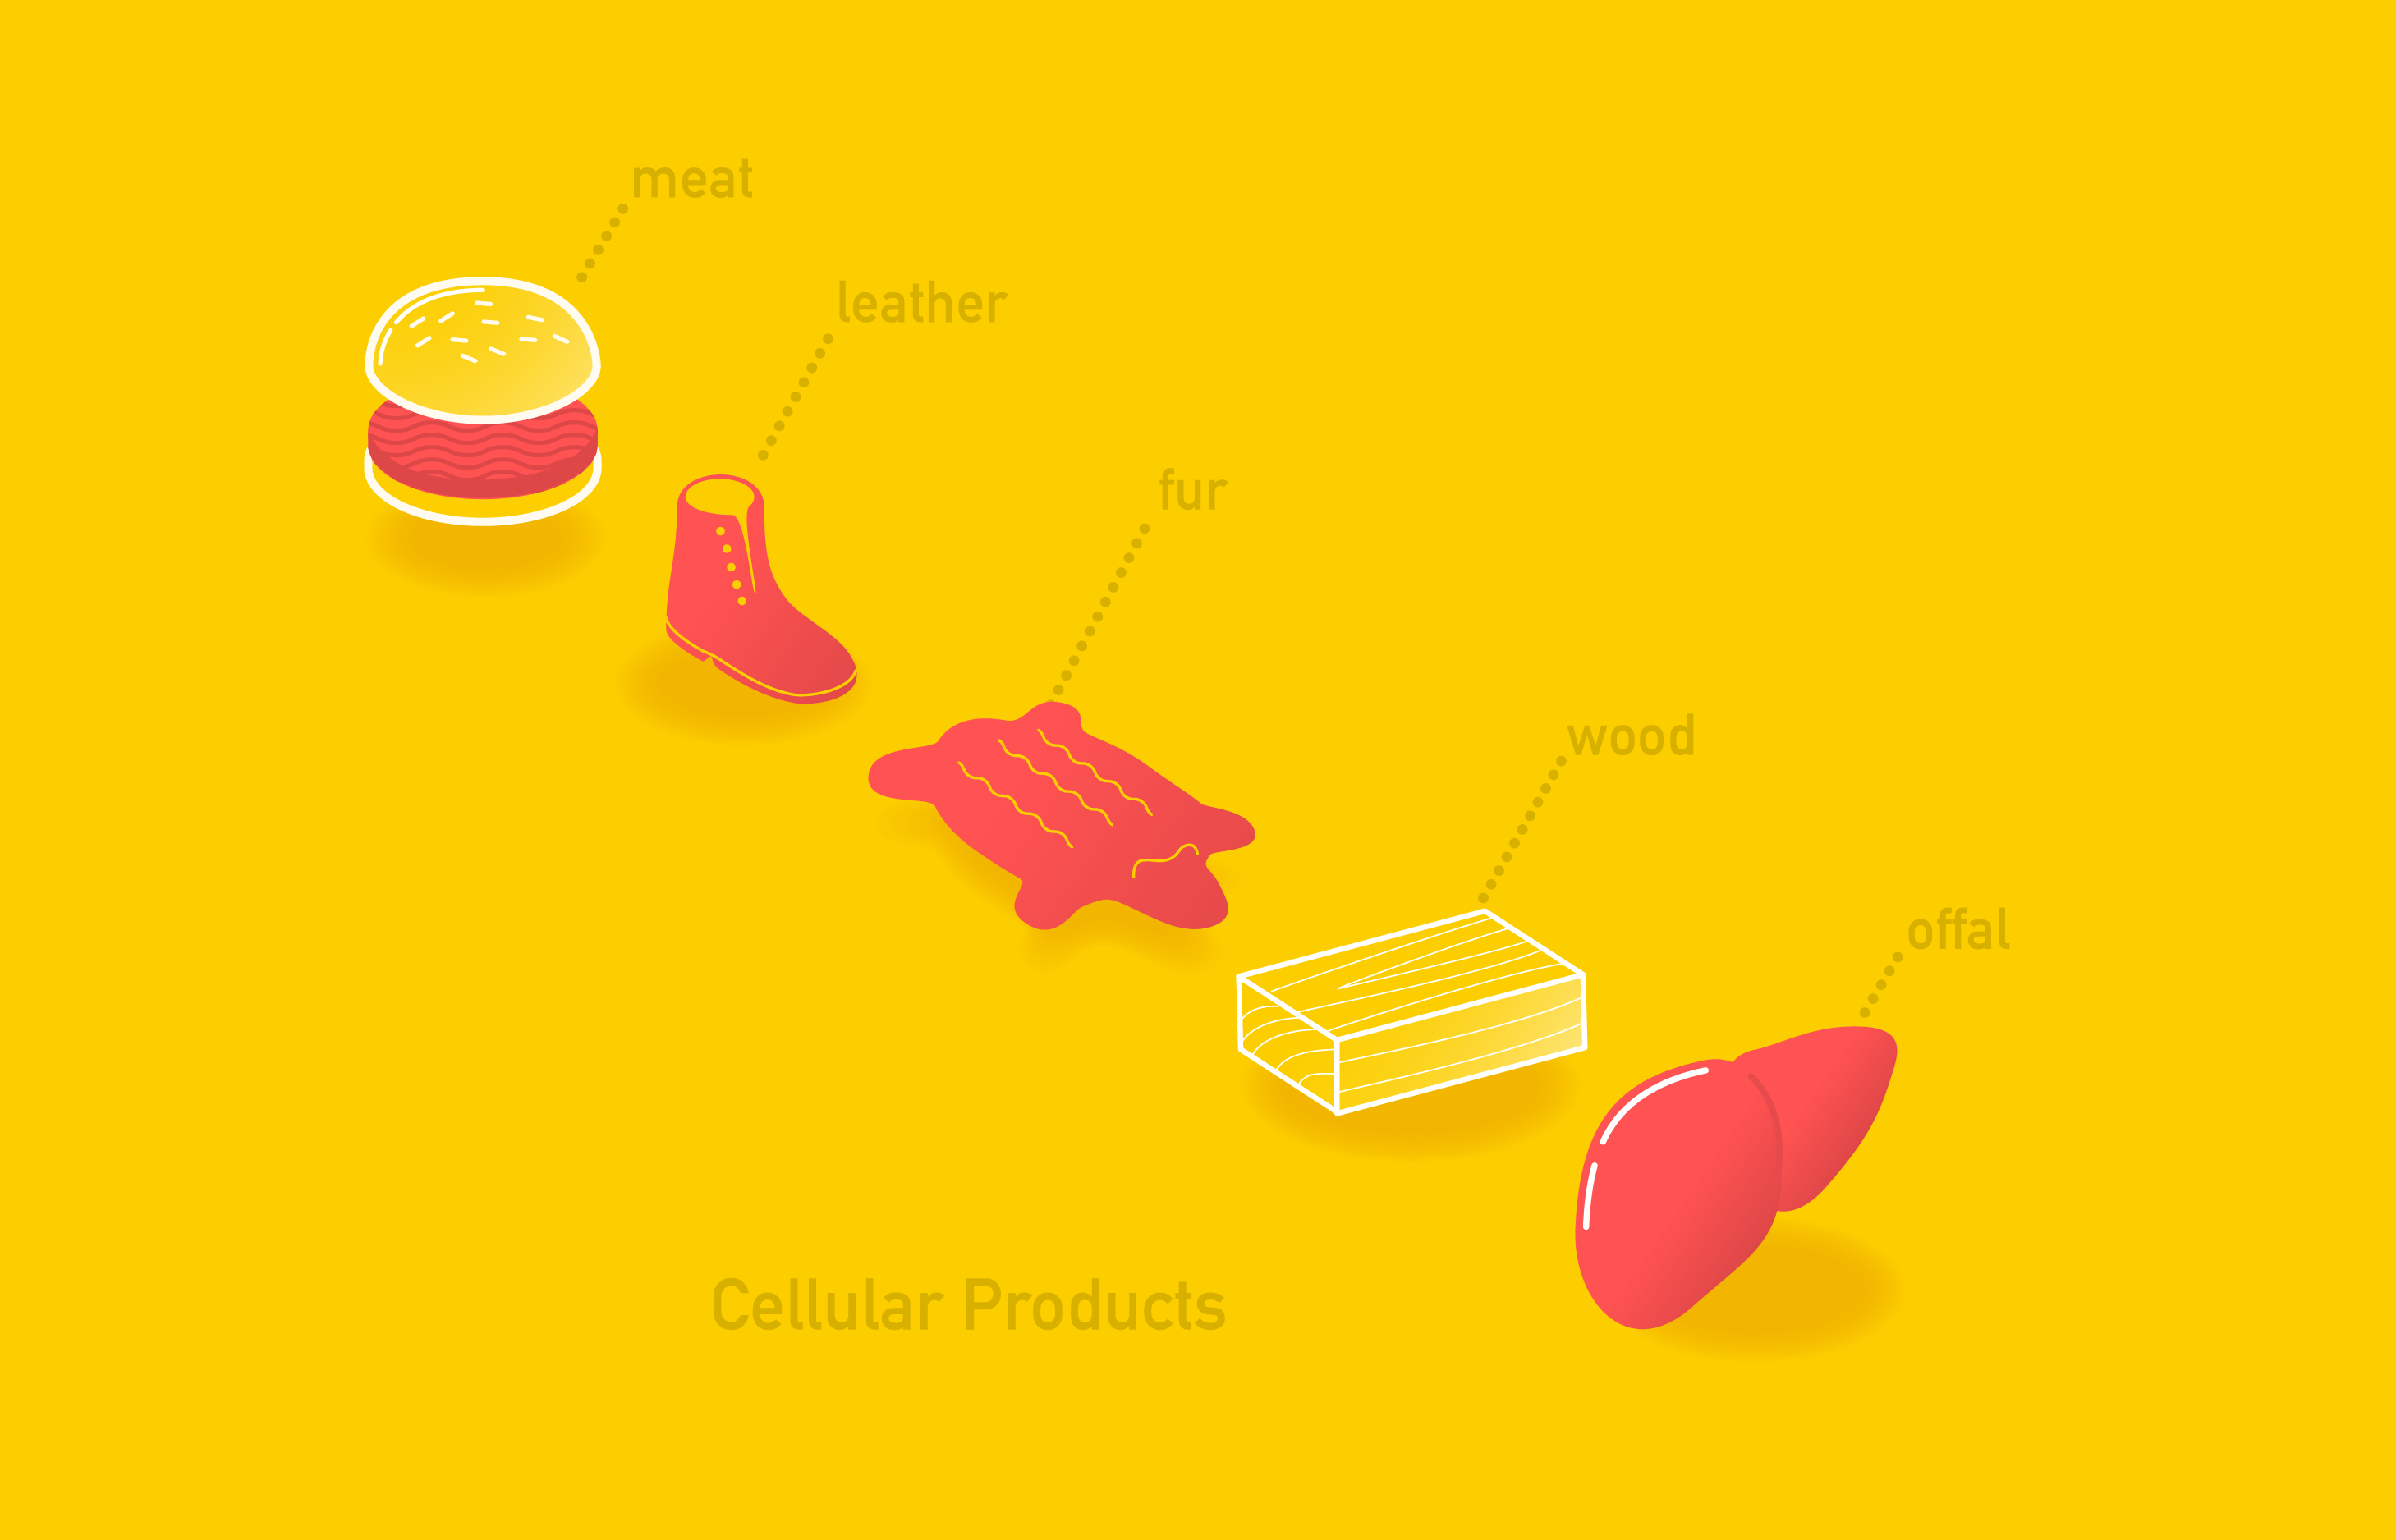 group of cellular products